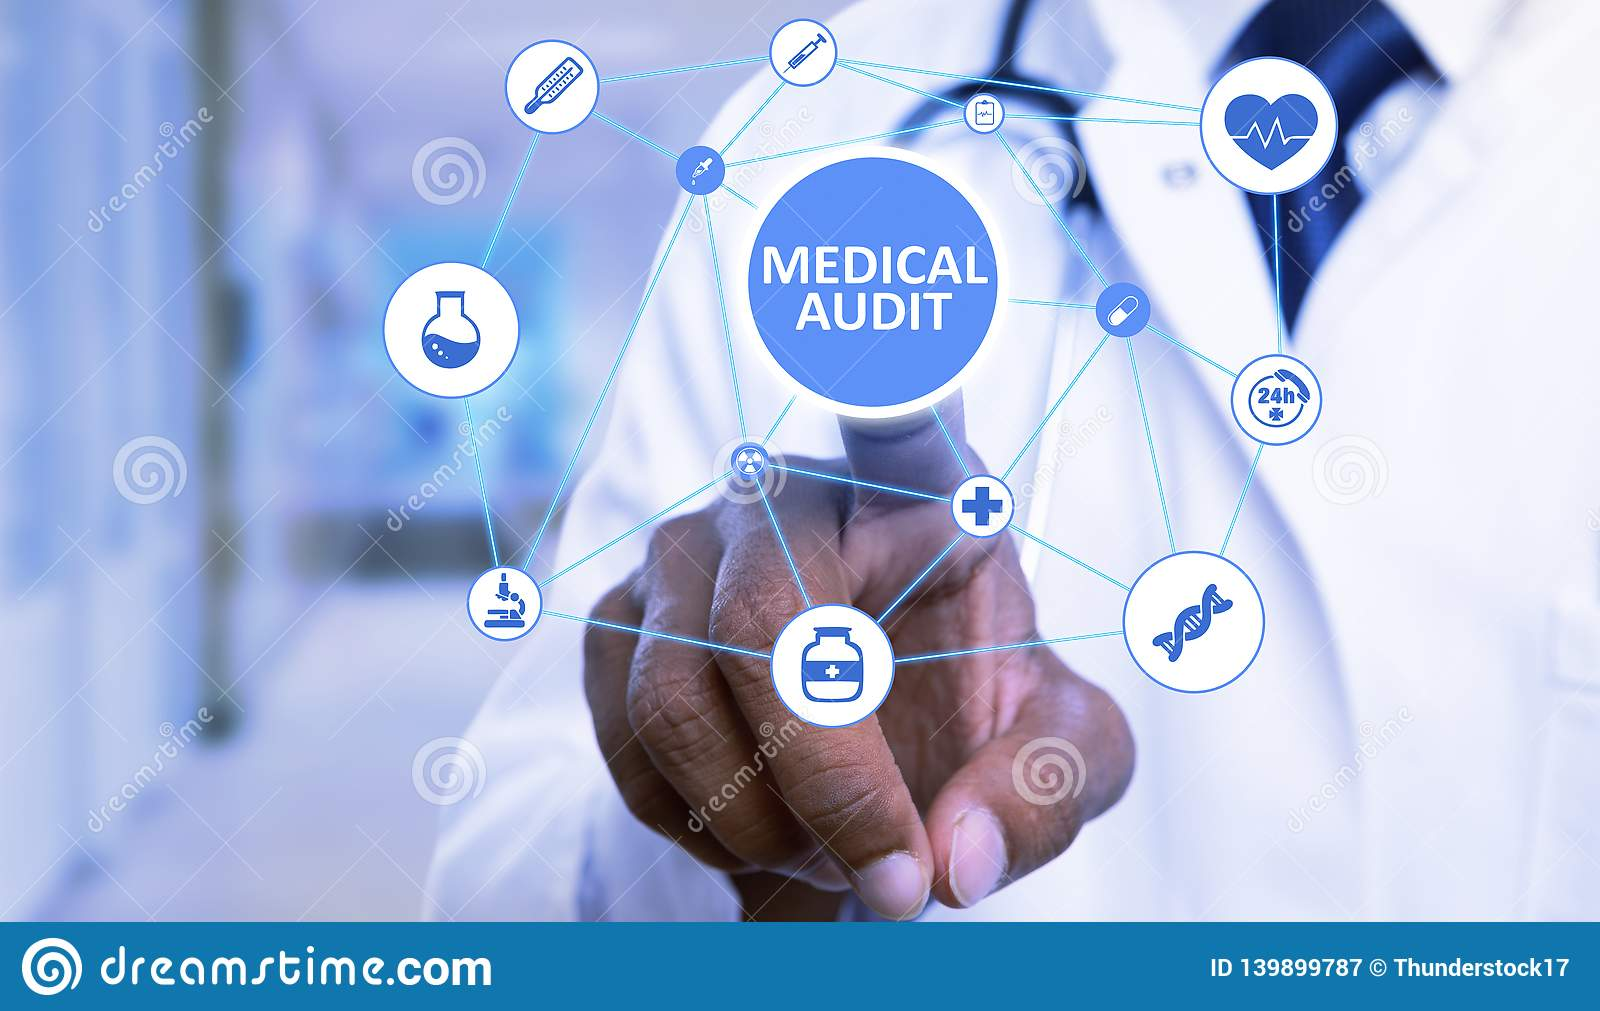 Closeup of medical audit button pressed by doctor